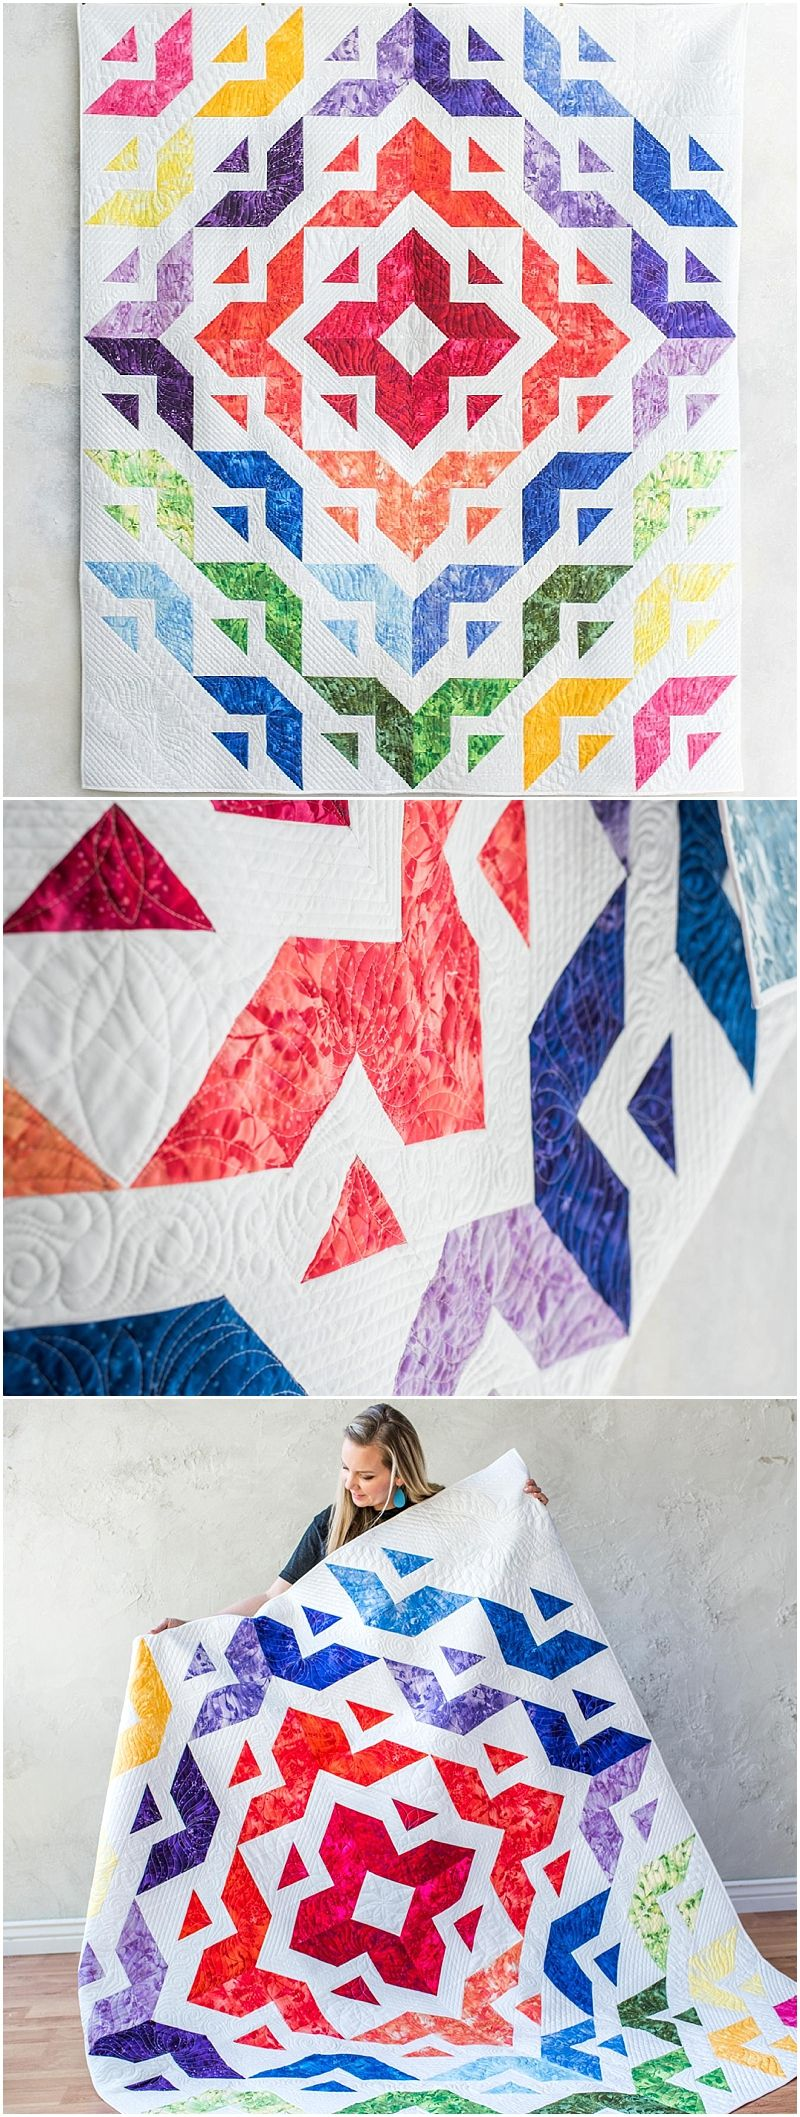 All Roads Quilt Kit | Craftsy. Rainbow quilt kit by Angela Walters ... : all quilts - Adamdwight.com